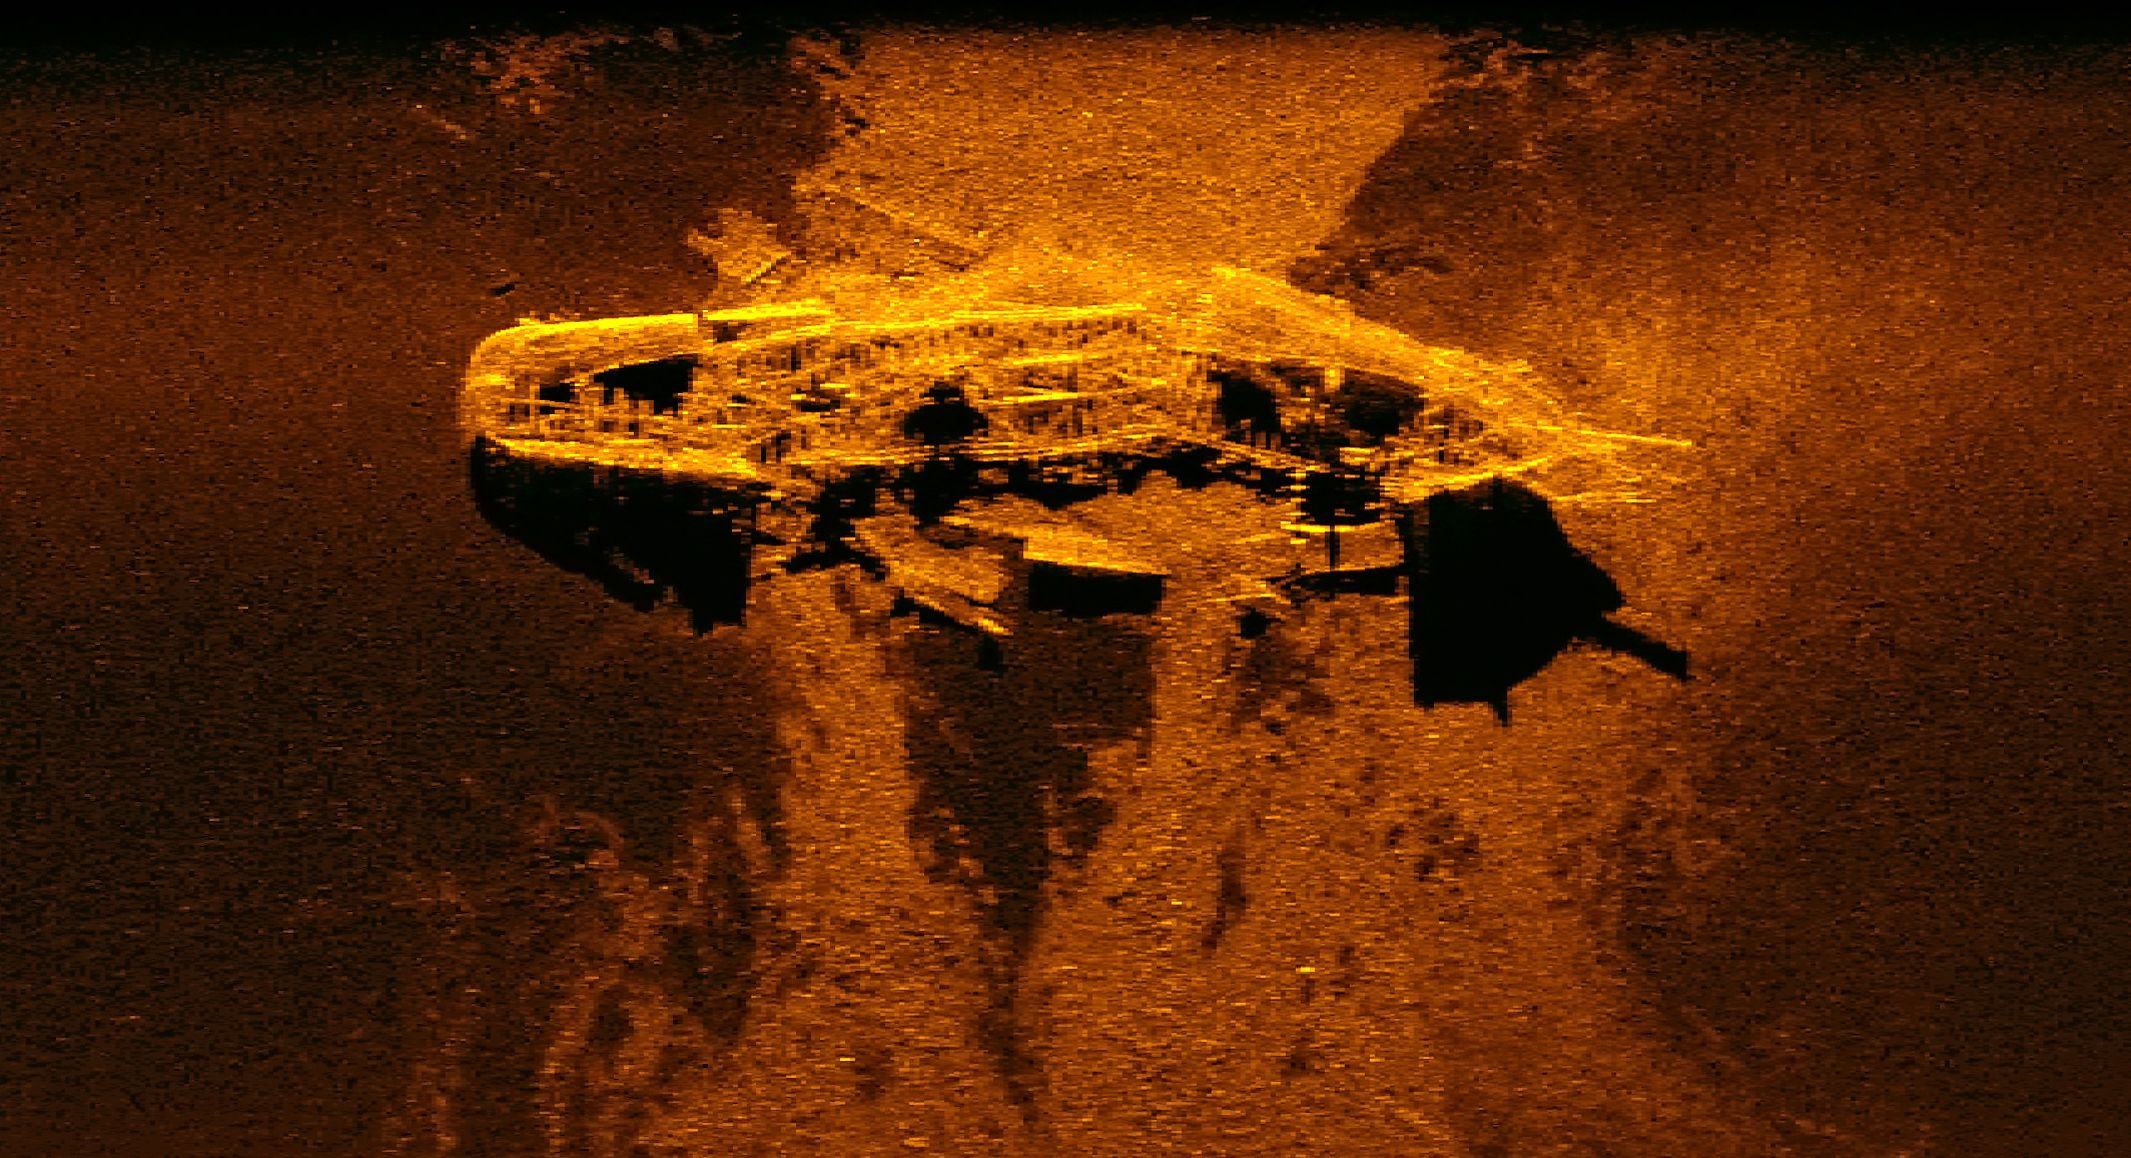 Mh370 Shipwrecks Among Deepest Ever Discovered